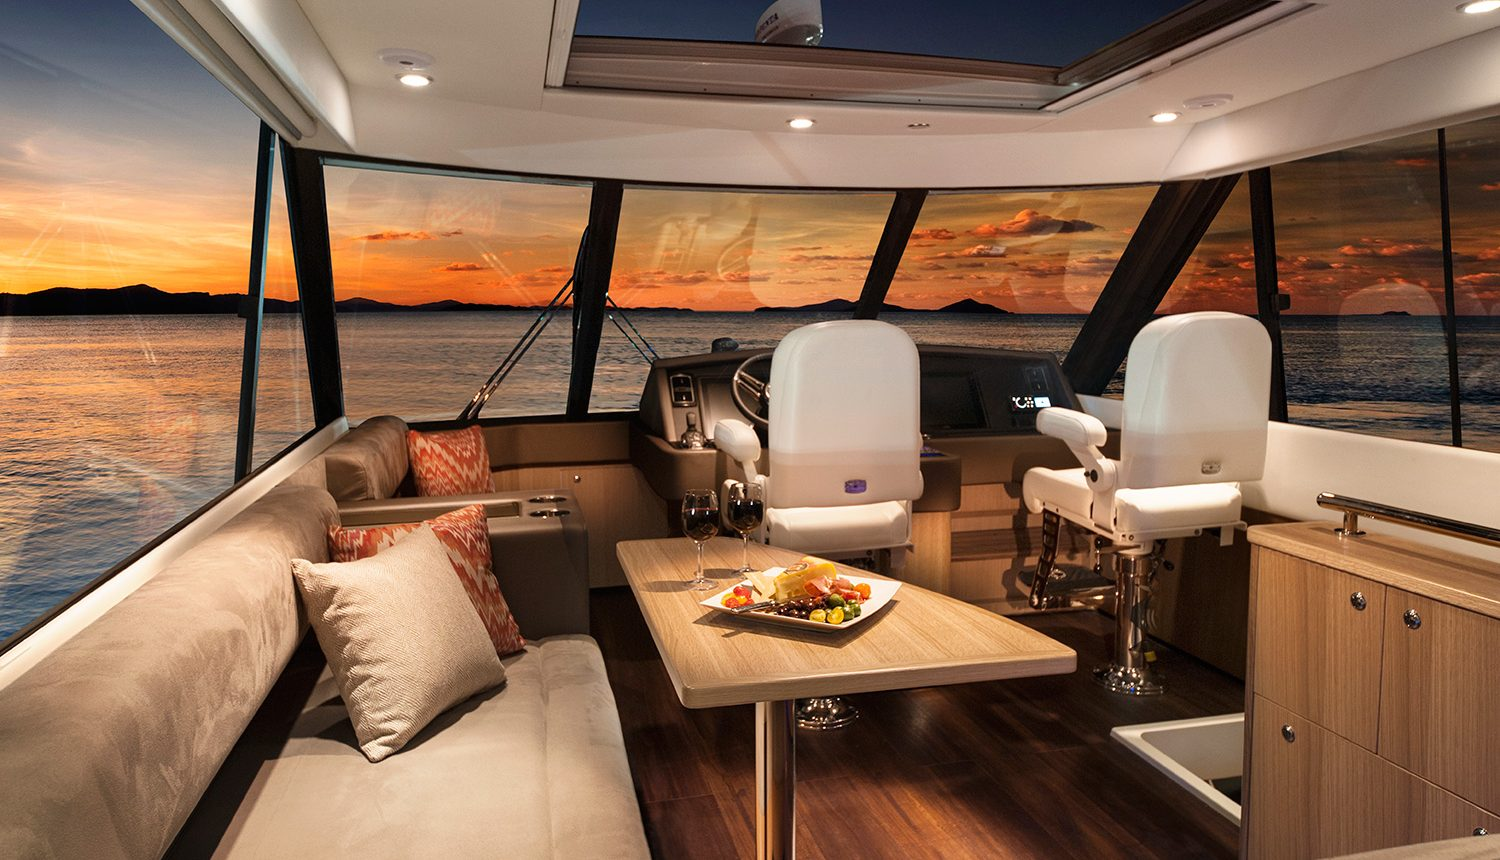 Riviera 57 Enclosed Flybridge For Sale SYS Yacht Sales